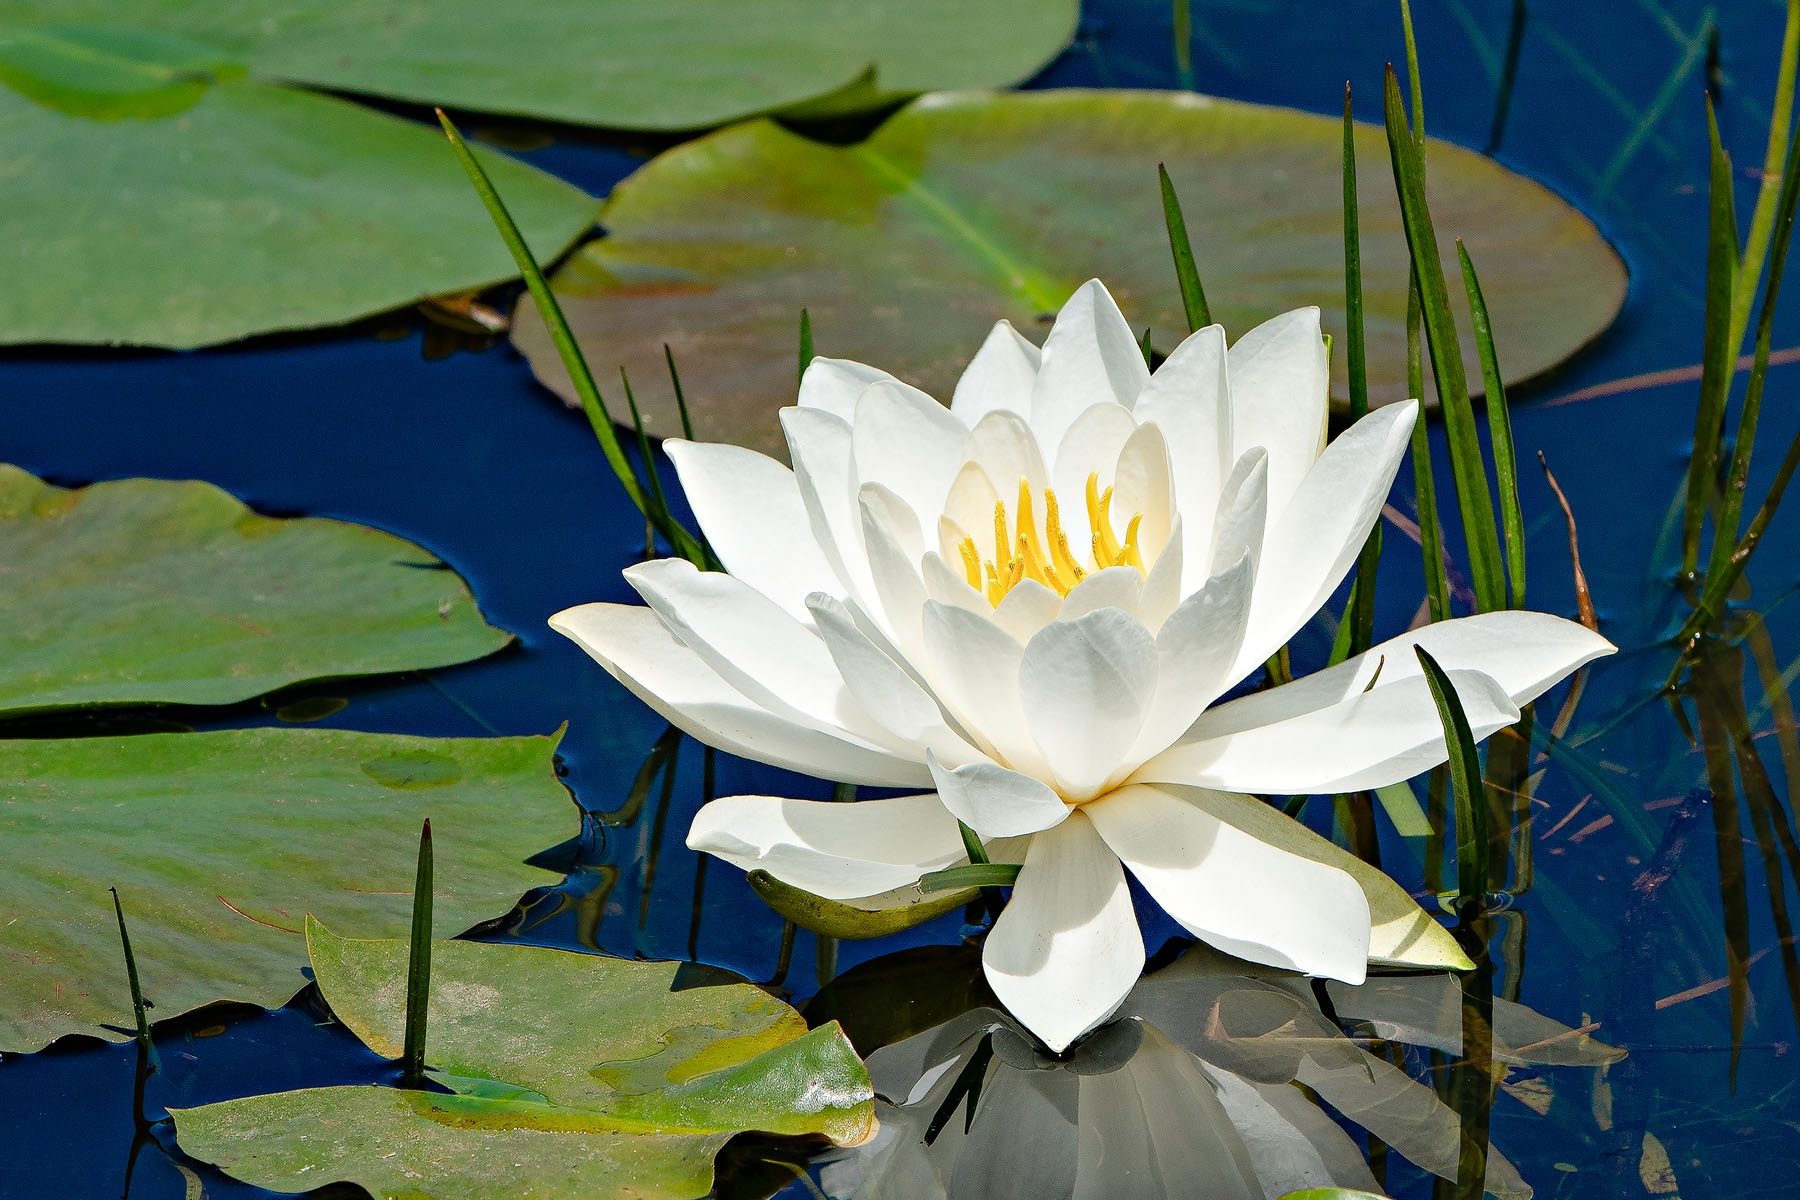 WATER LILY - I came upon this lily in a pond in New Hampshire. I've often photographed water lilies without much to show, but I am pleased with this shot.